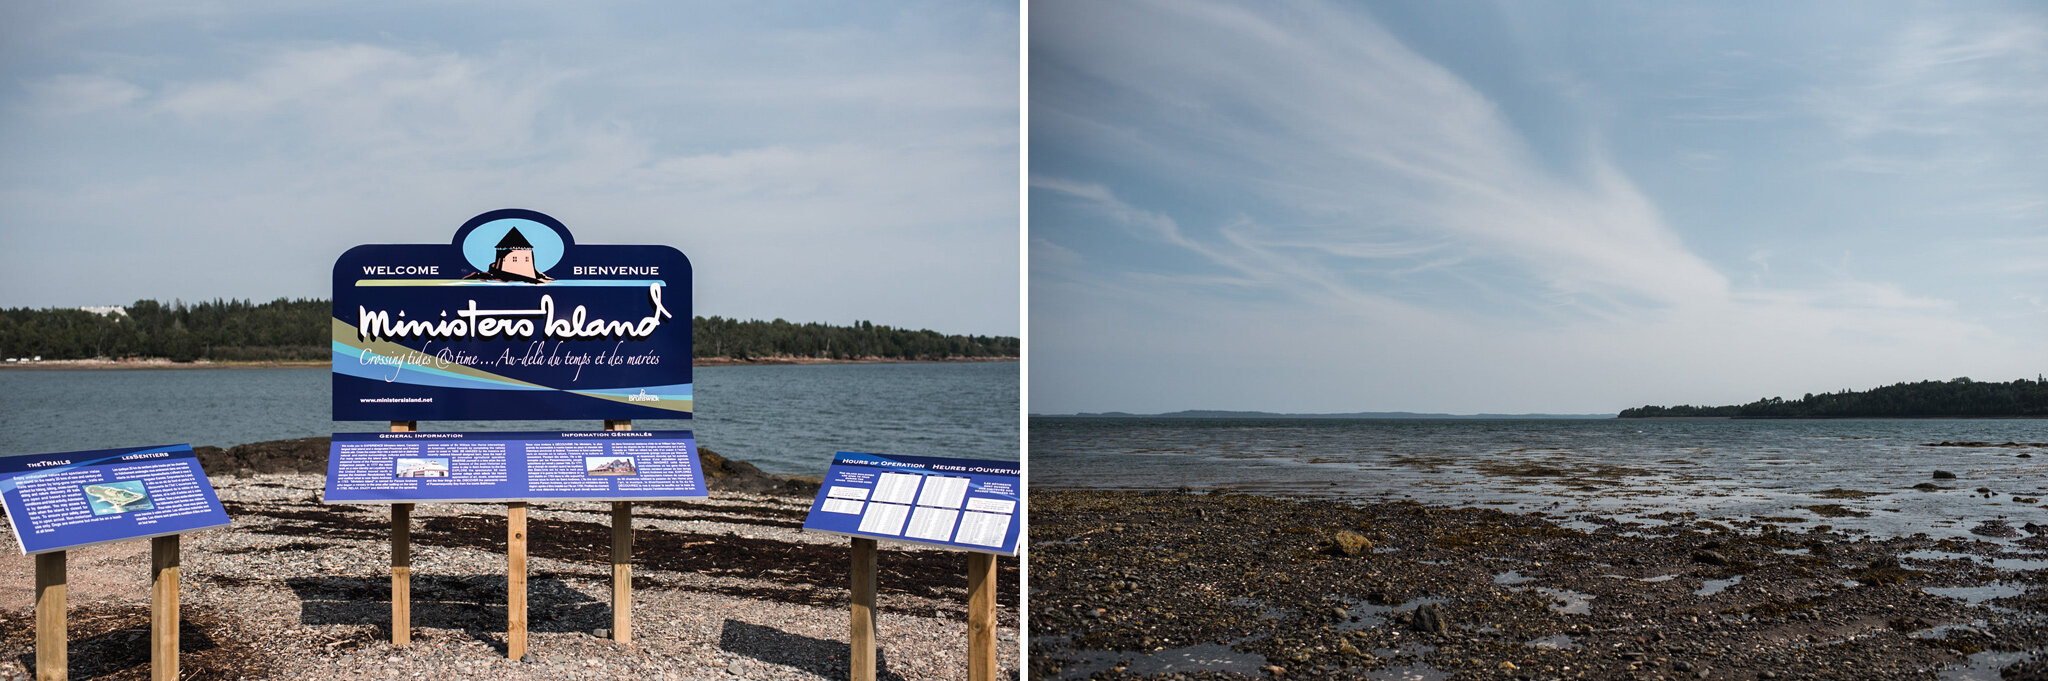 223-ministers-island-wedding-photography-new-brunswick-st--andrews-by-the-sea.jpg